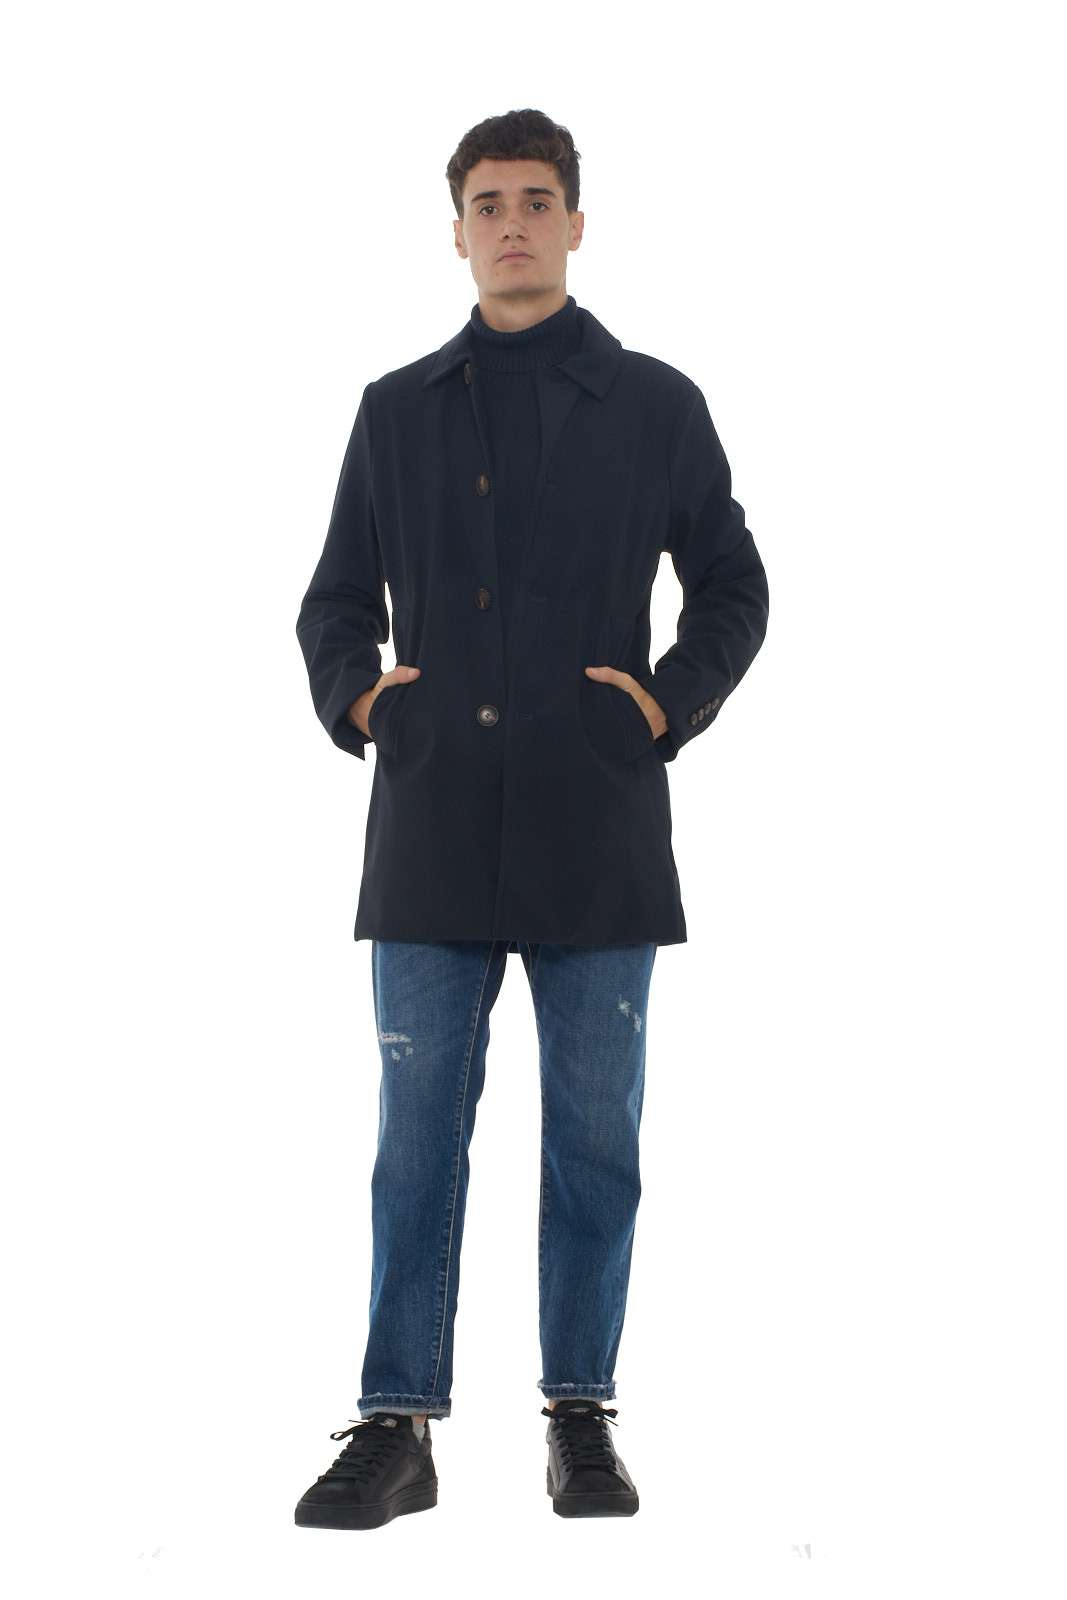 https://www.parmax.com/media/catalog/product/a/i/AI-outlet_parmax-trench-uomo-RRD-W19035-D.jpg